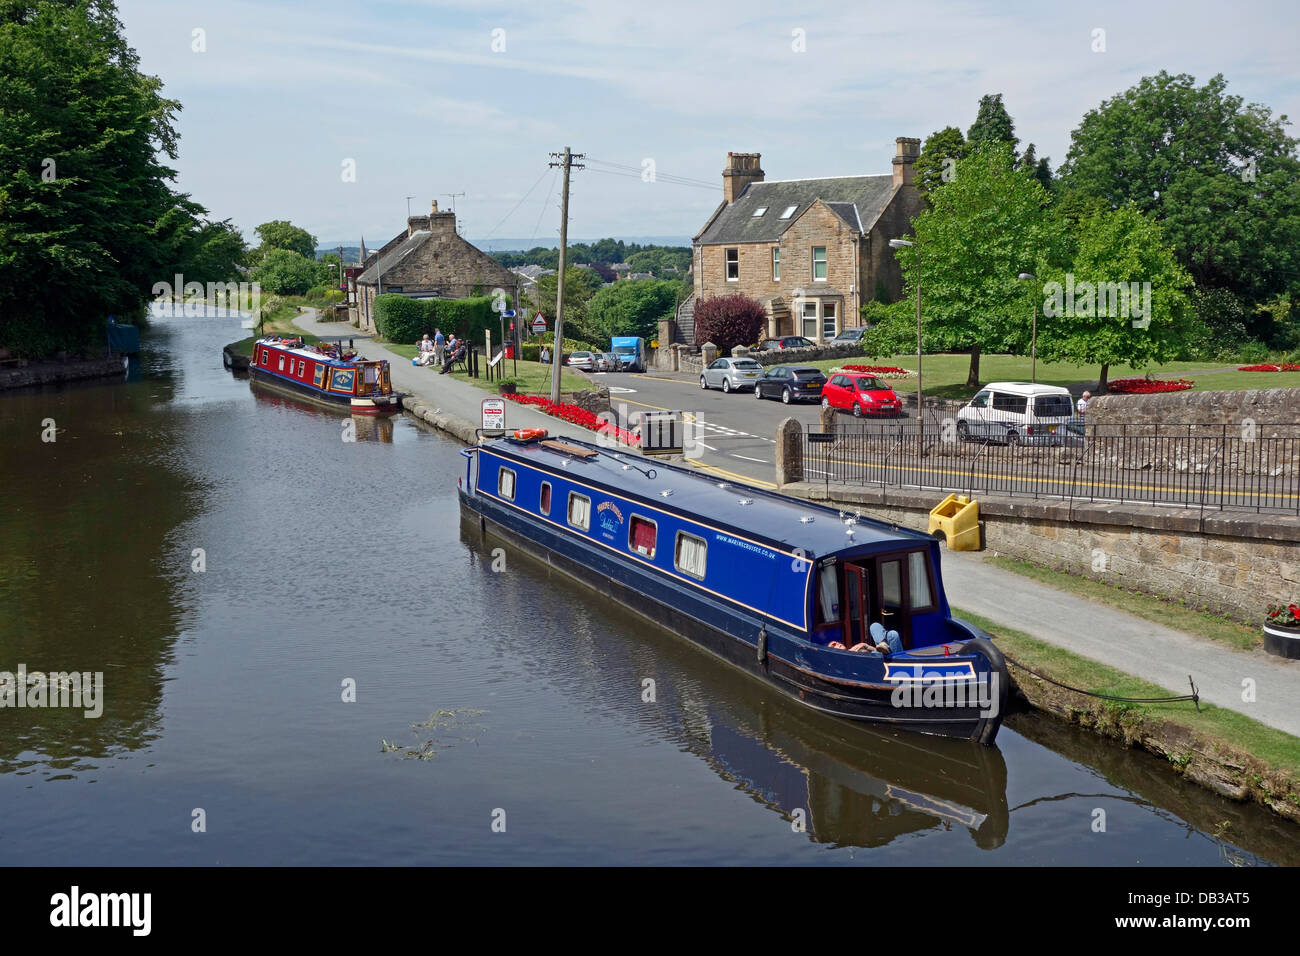 Canal boats Marine Cruises Debbie II and Charter Hotel Boat  Willow moored in the Union Canal at Linlithgow Scotland - Stock Image